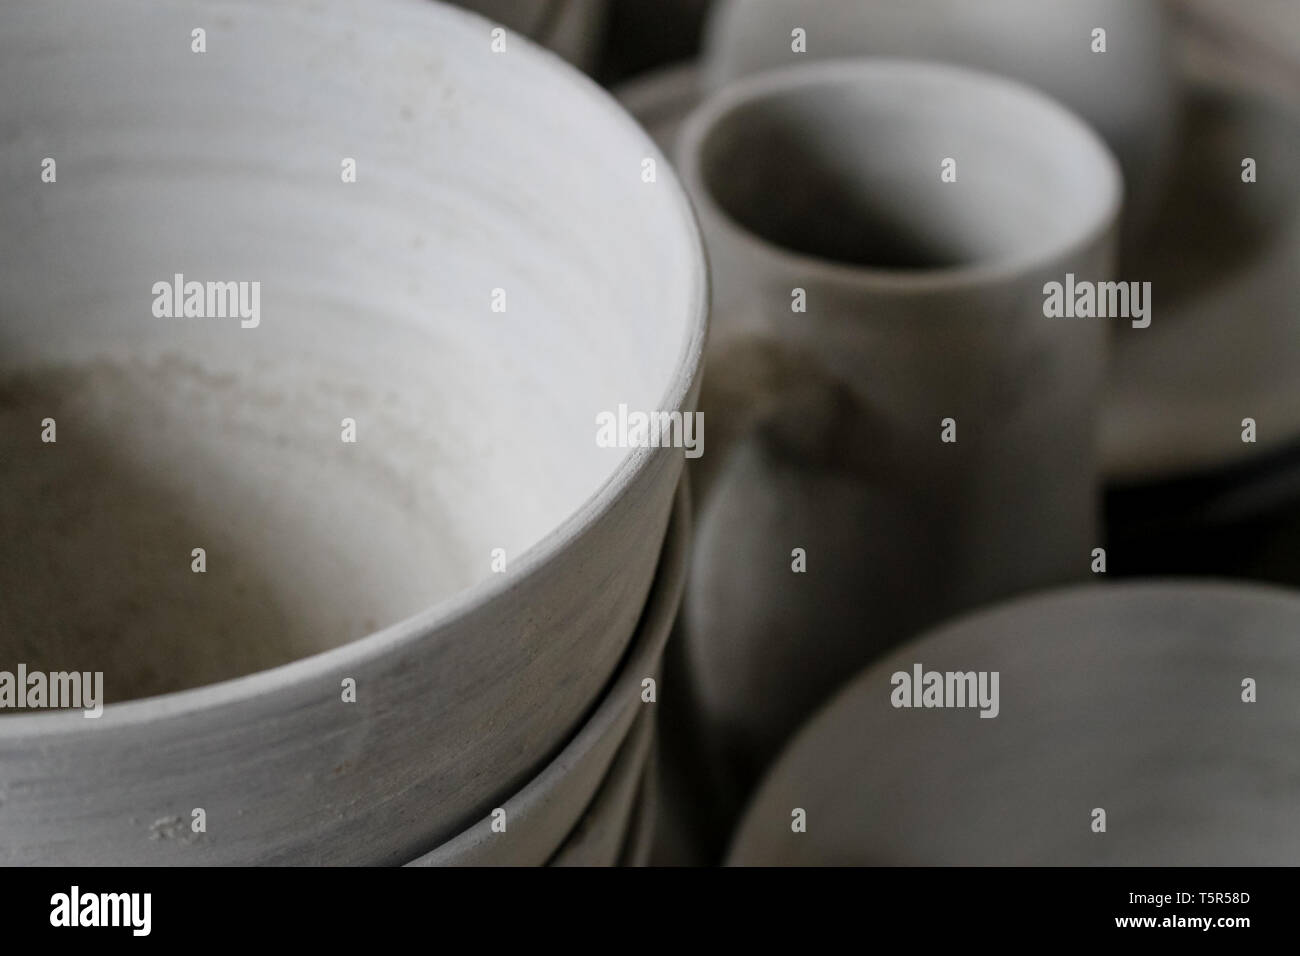 FEZ, MOROCCO - November 1, 2012: Handmade pottery goods stacked in columns in a pottery workshop in Fez, Morocco. - Stock Image